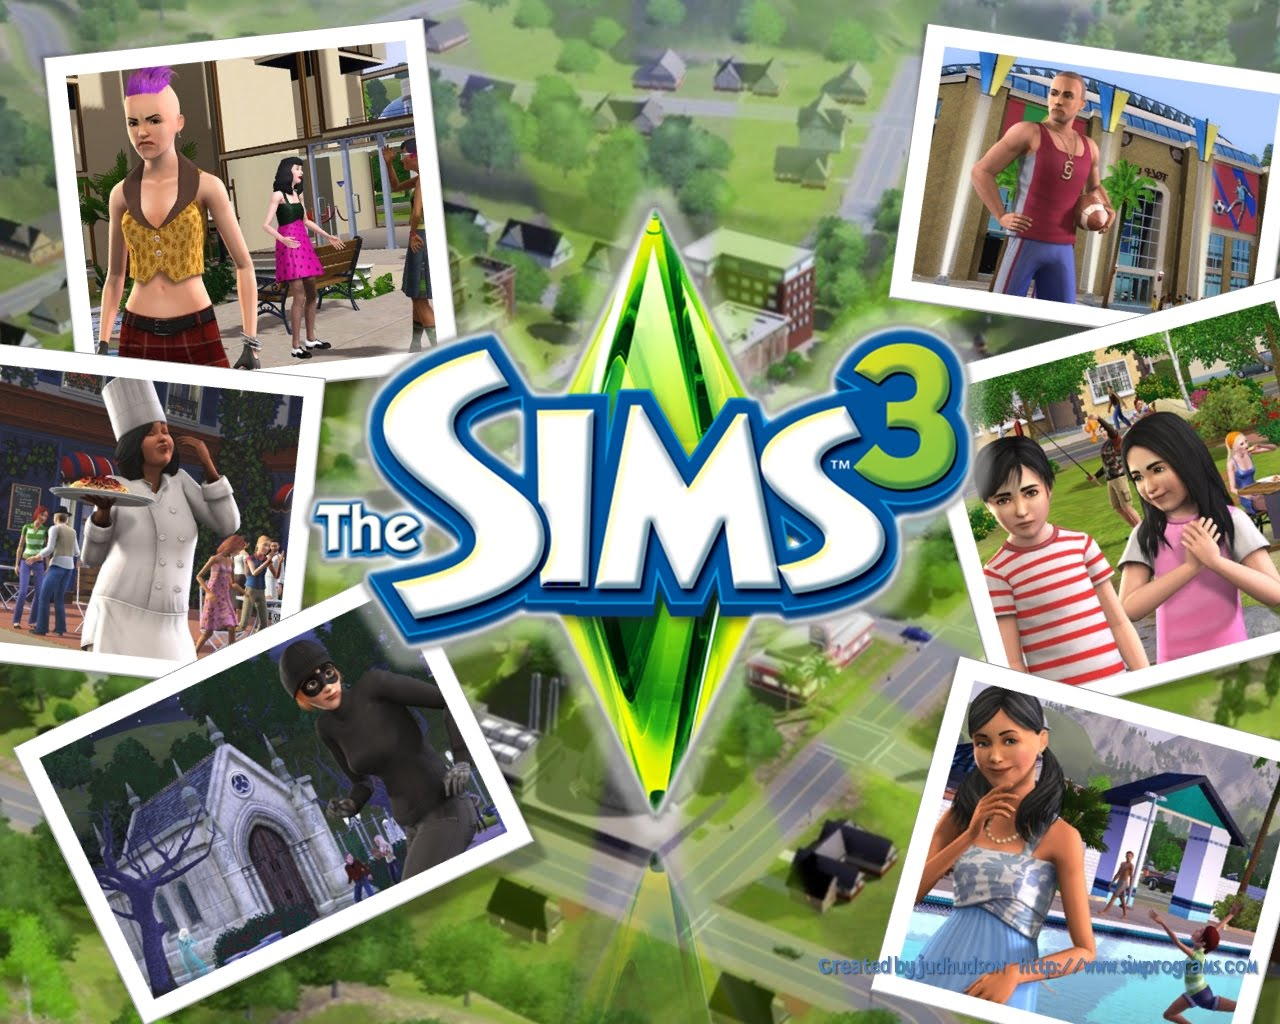 the sims 3 wallpaper hd 1280x1024